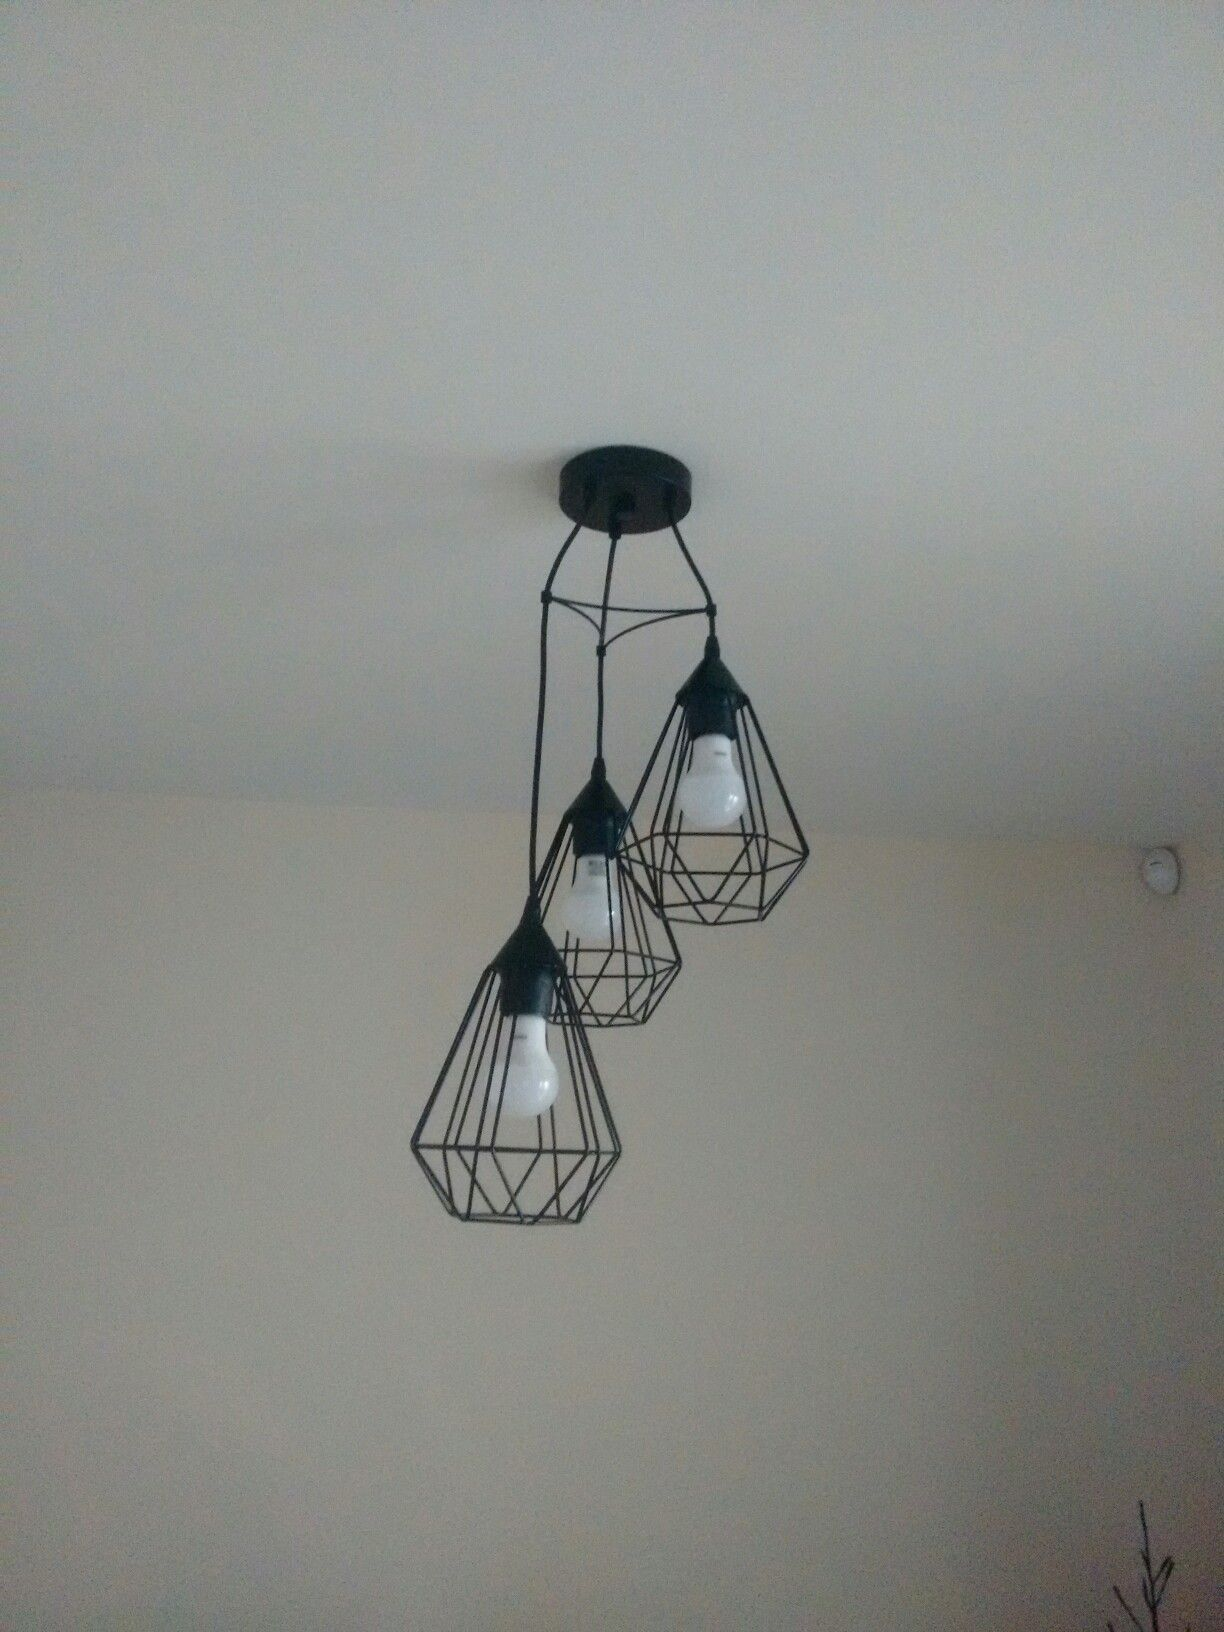 Eglo Verlichting Made Eglo Tarbes Black Triple Drop Cluster Pendant Light Ház Házak